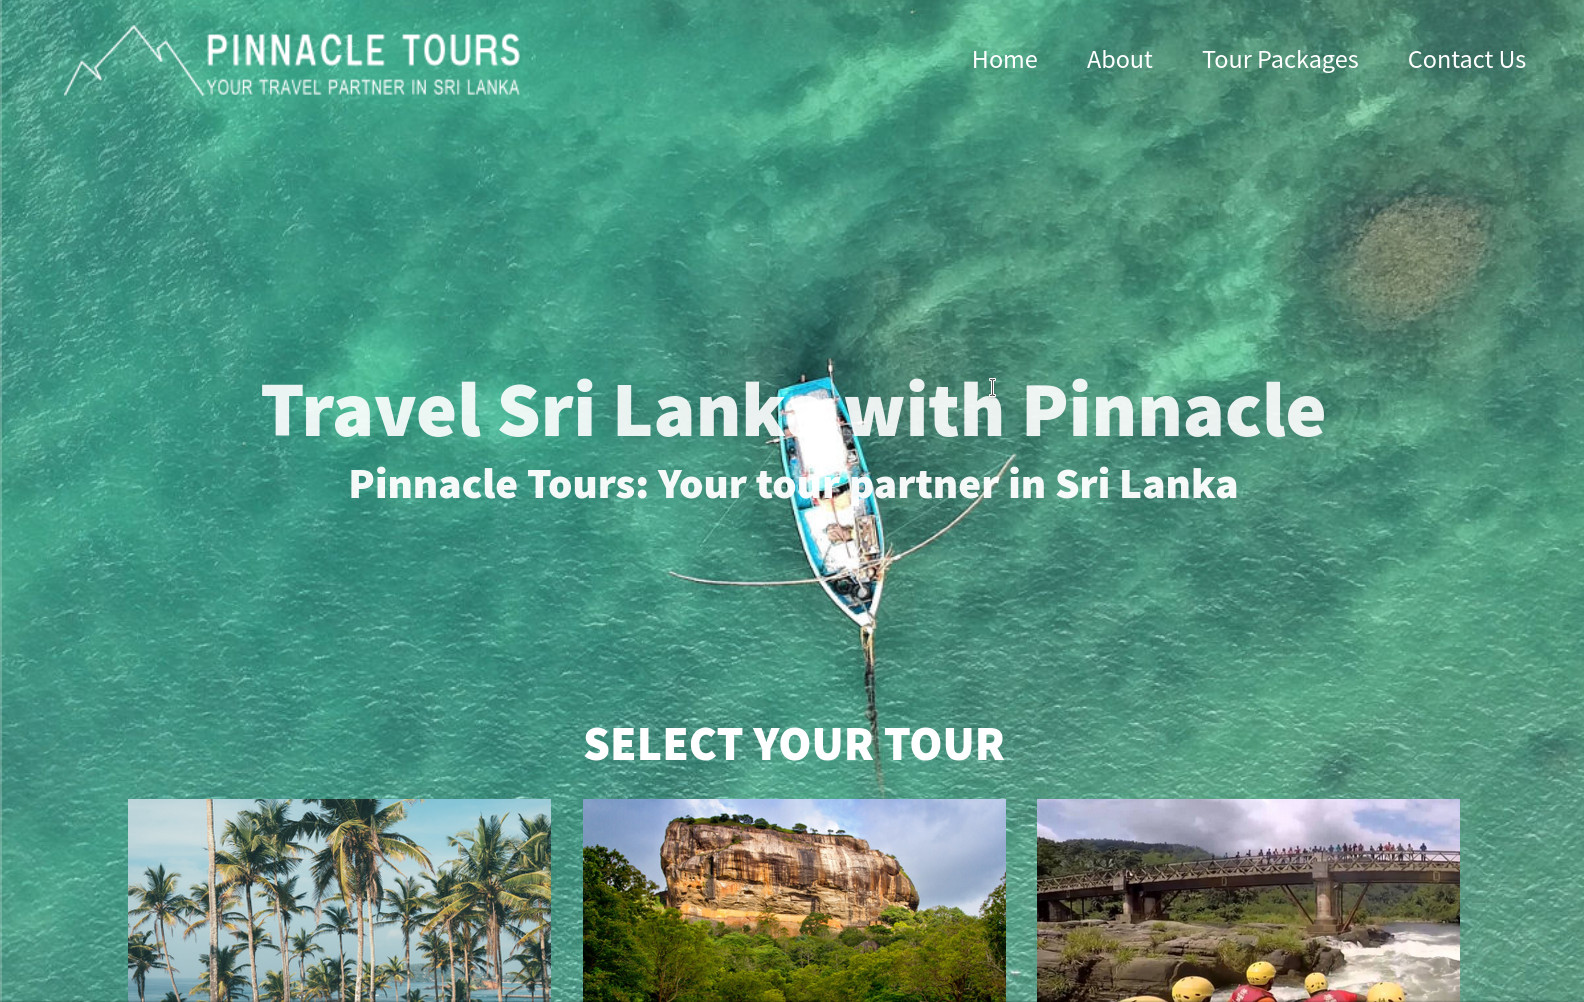 Pinnacle Leisure and Adventure Tours